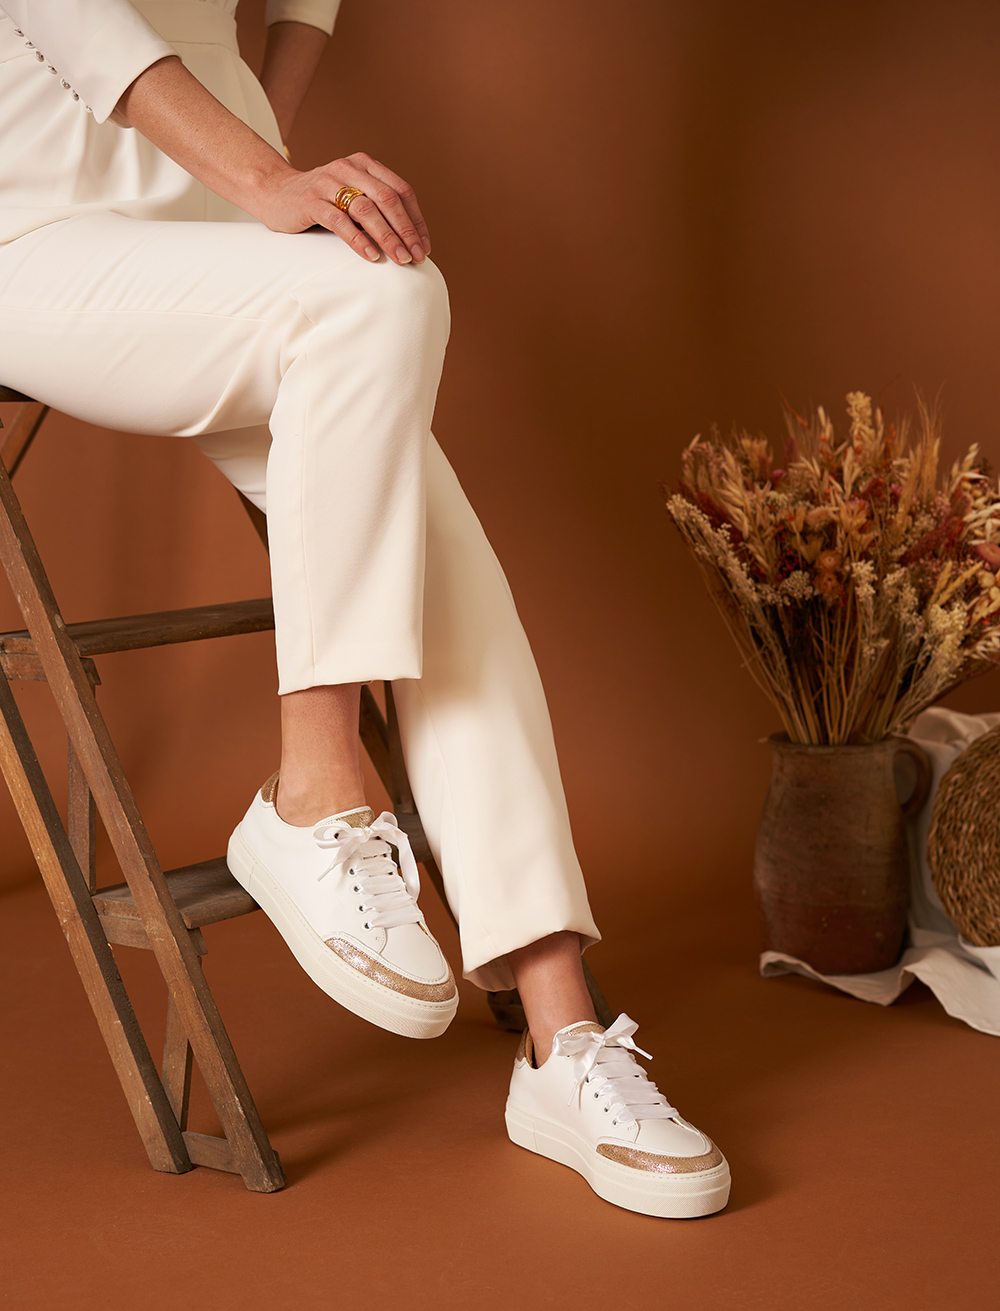 Suzanne Sneakers - White and Gold